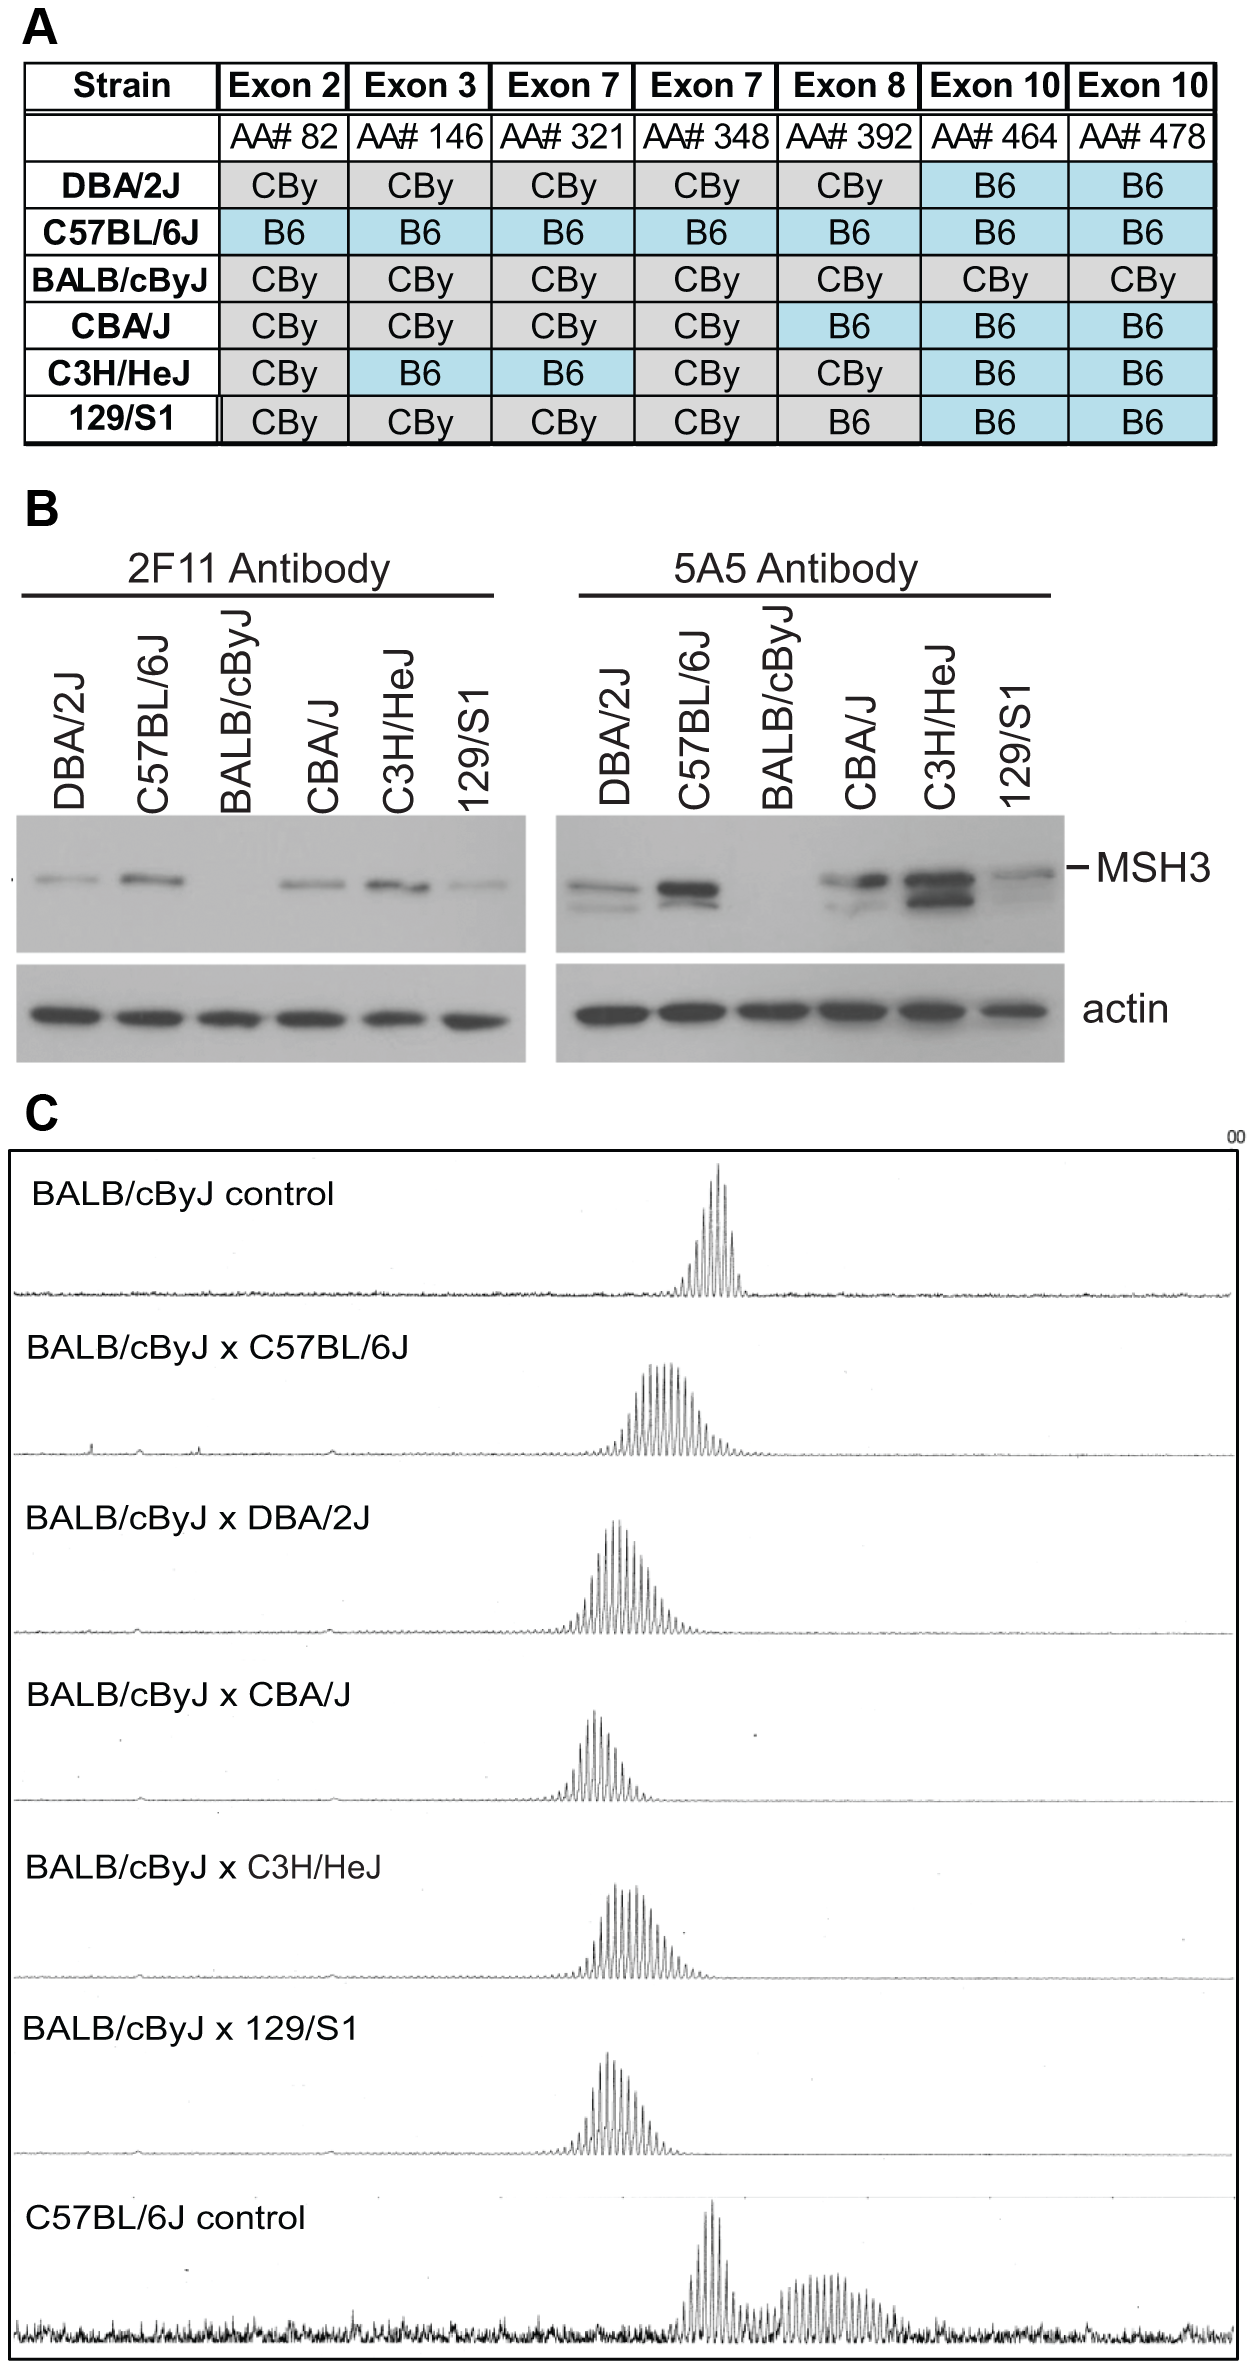 MSH3 coding polymorphisms and protein expression in different mouse strains.